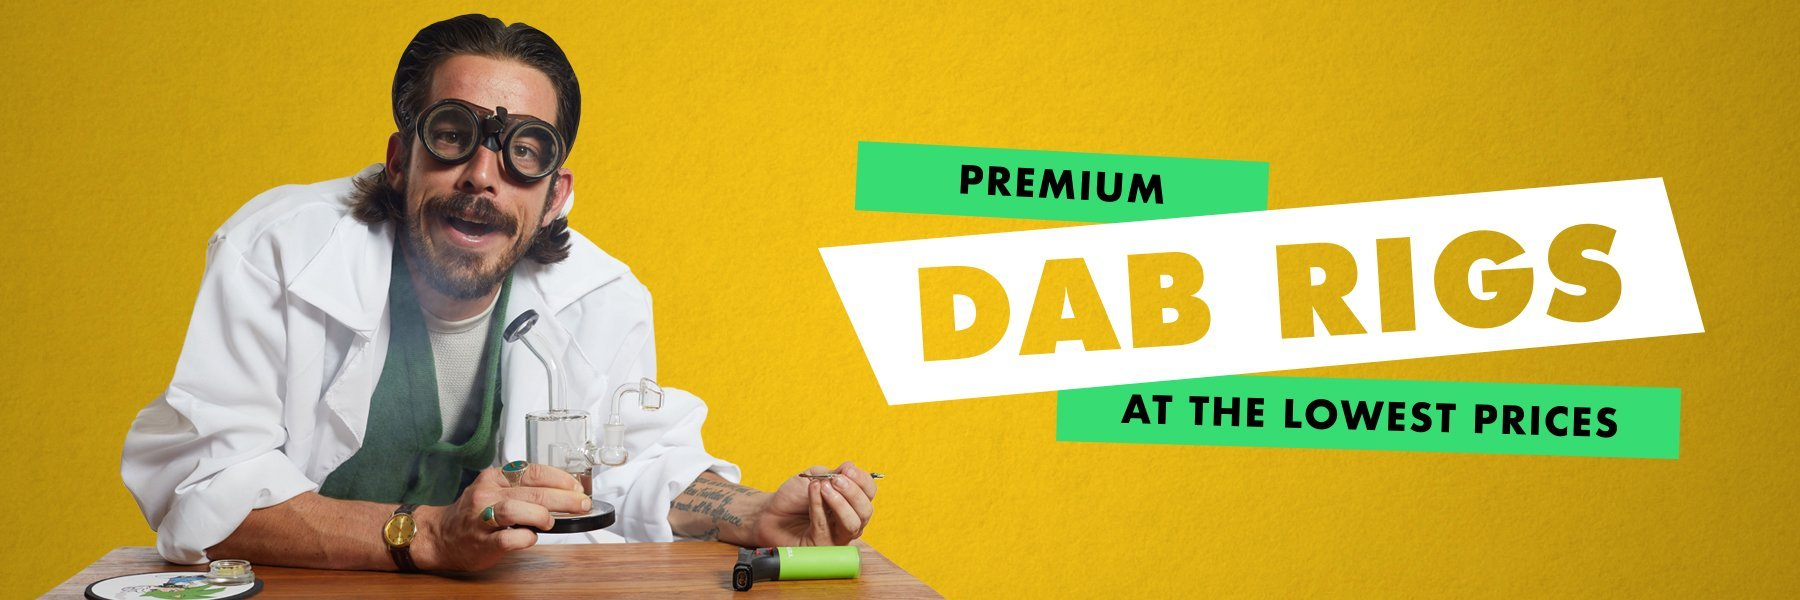 Premium dab rigs at the lowest prices